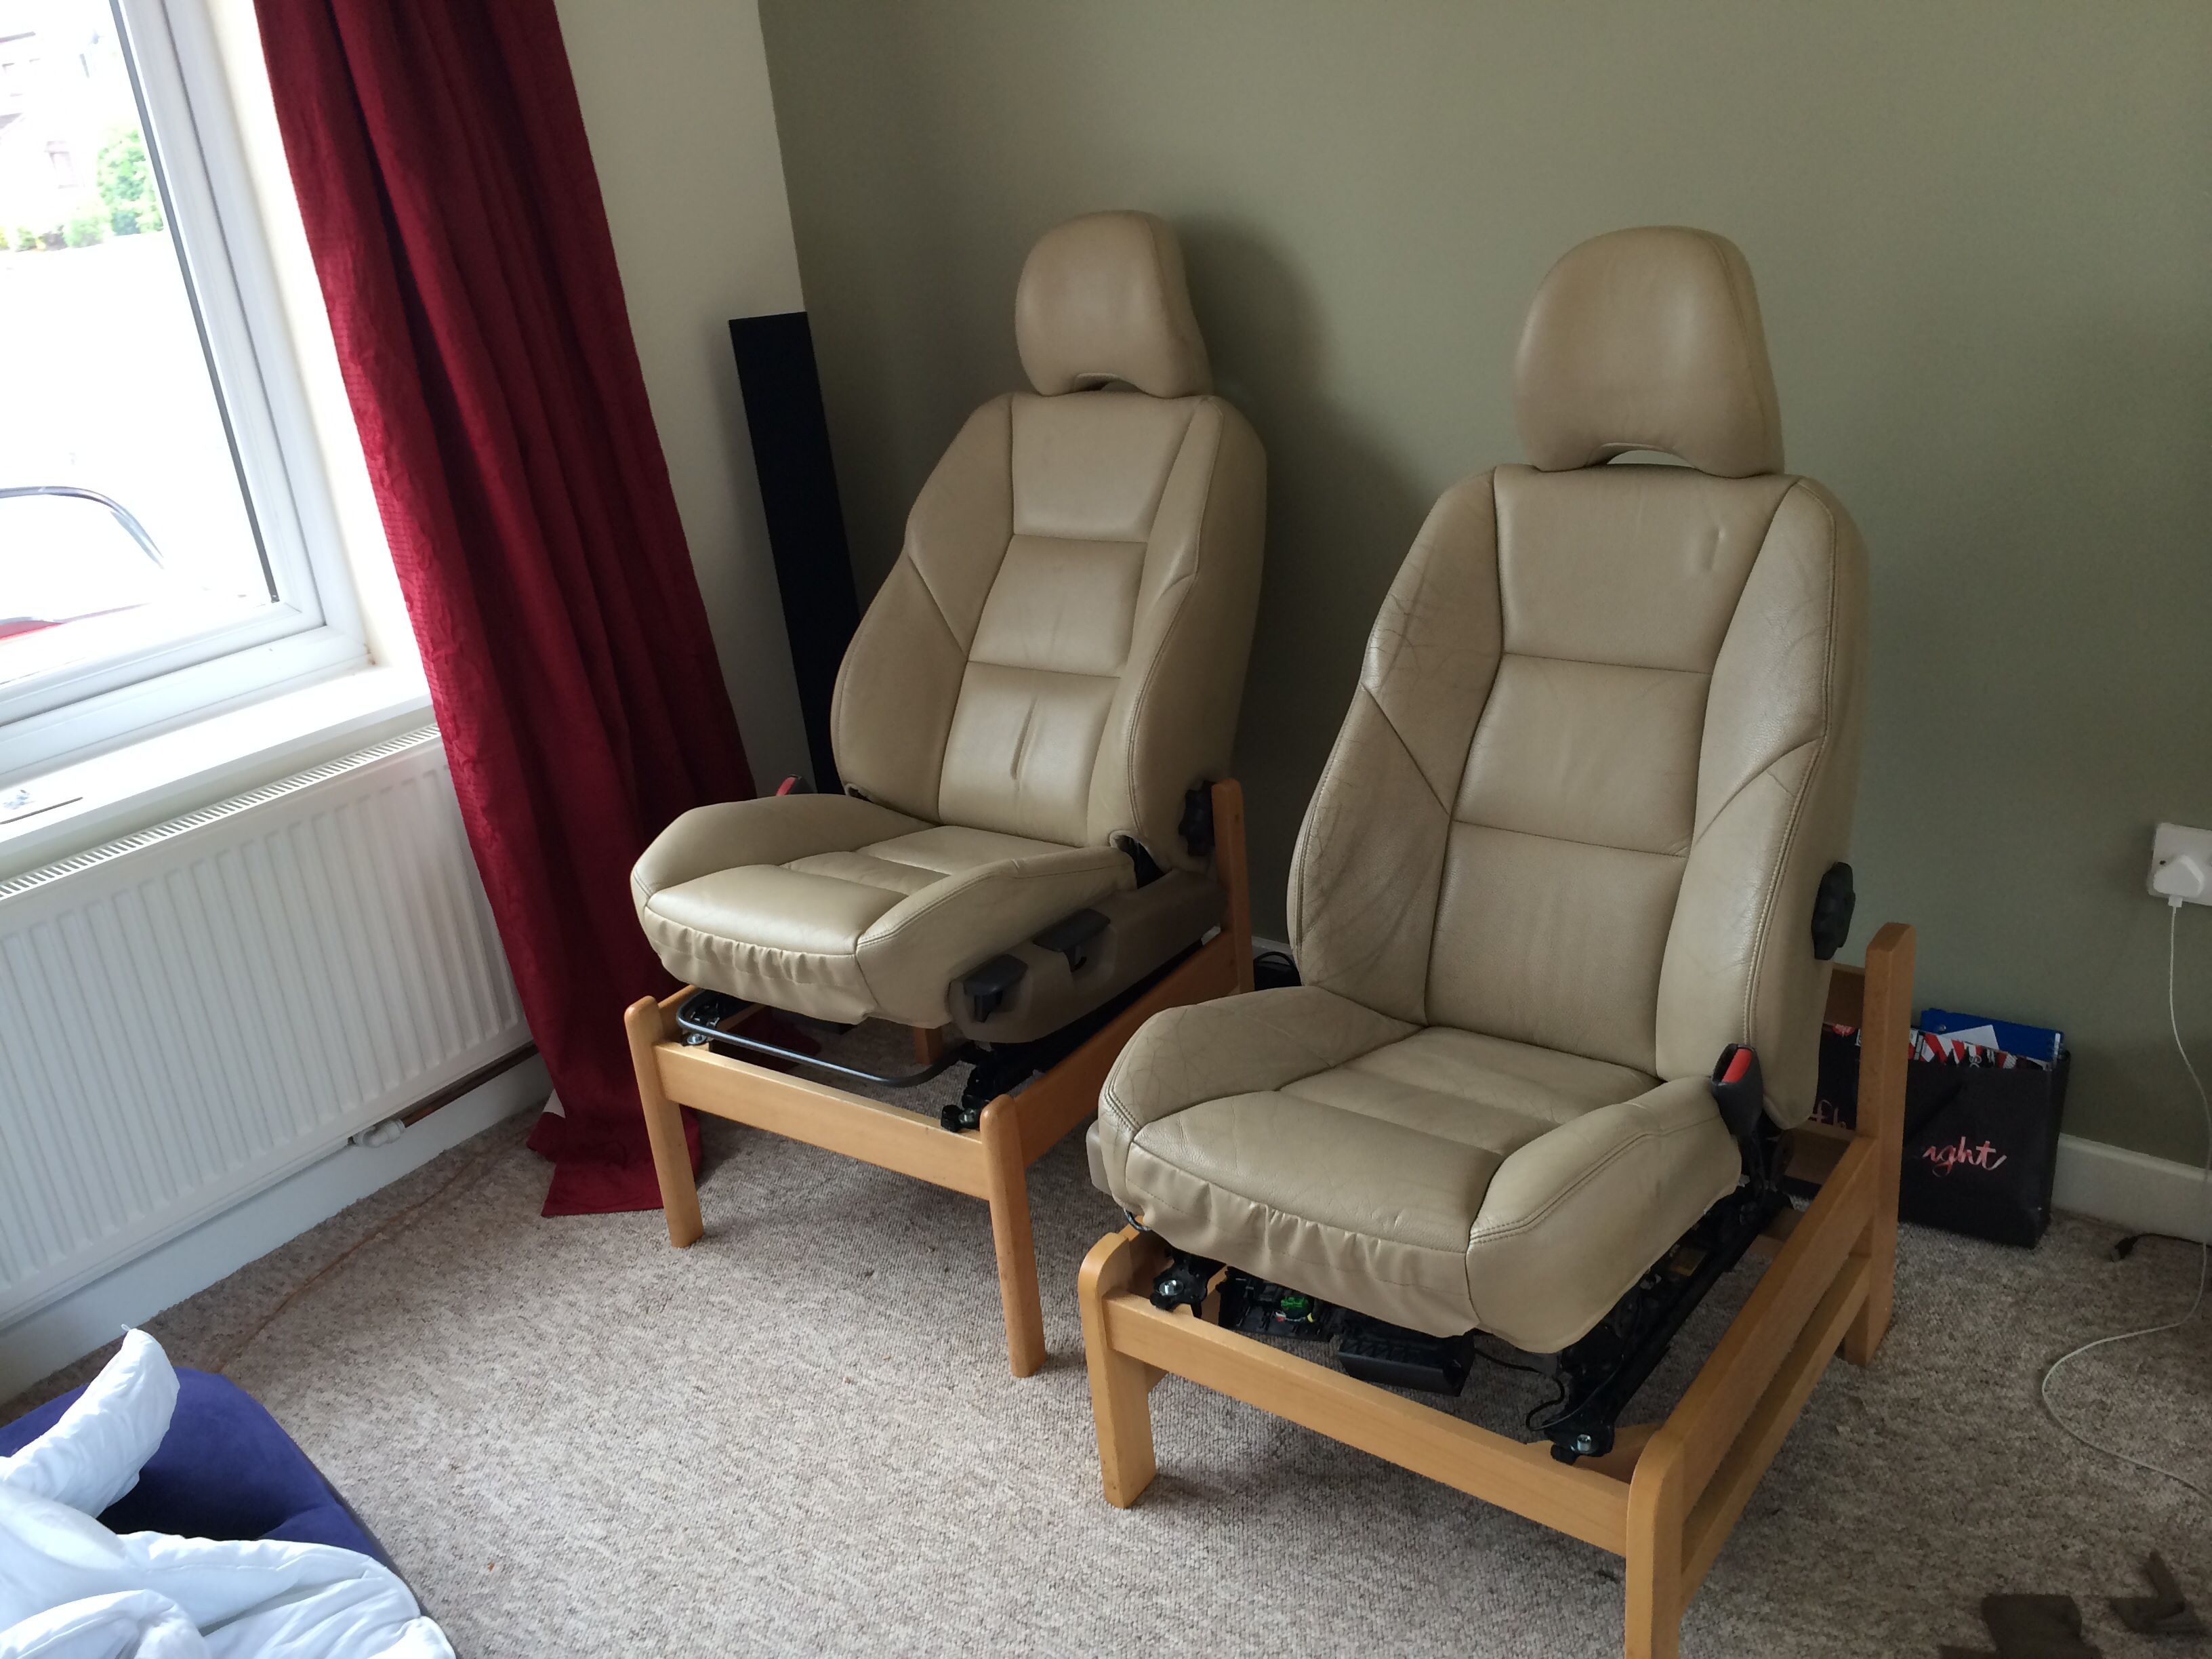 Home made car seat chairs. So comfy #homeofficeideasformen ...